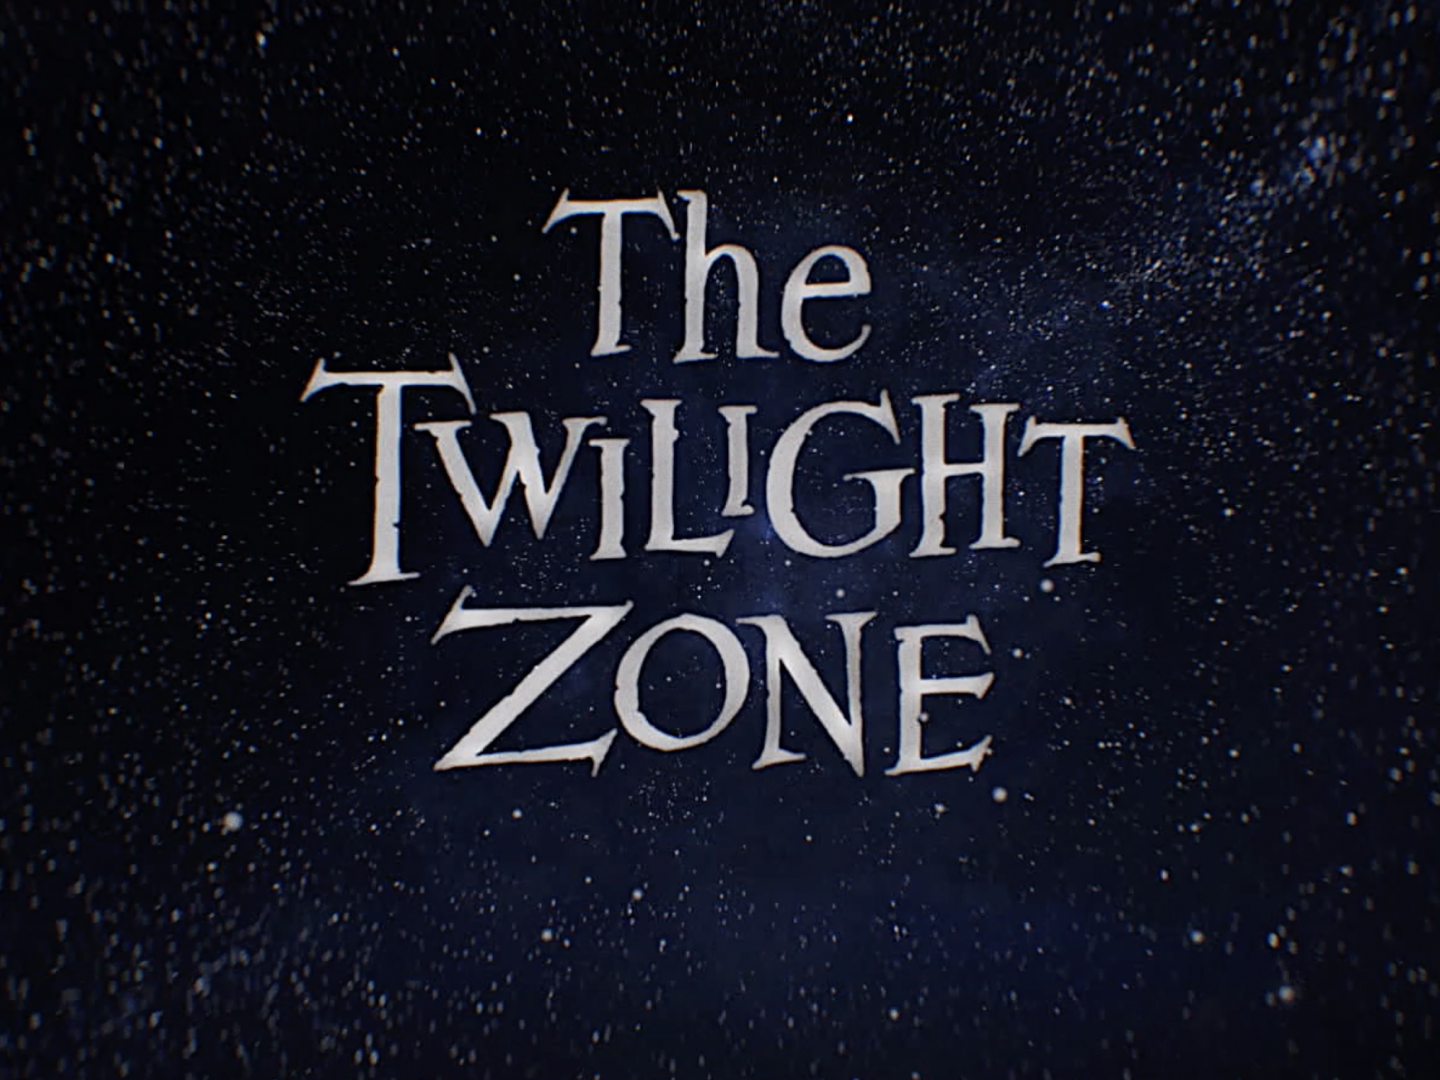 The Twilight Zone - Trailer Thumbnail